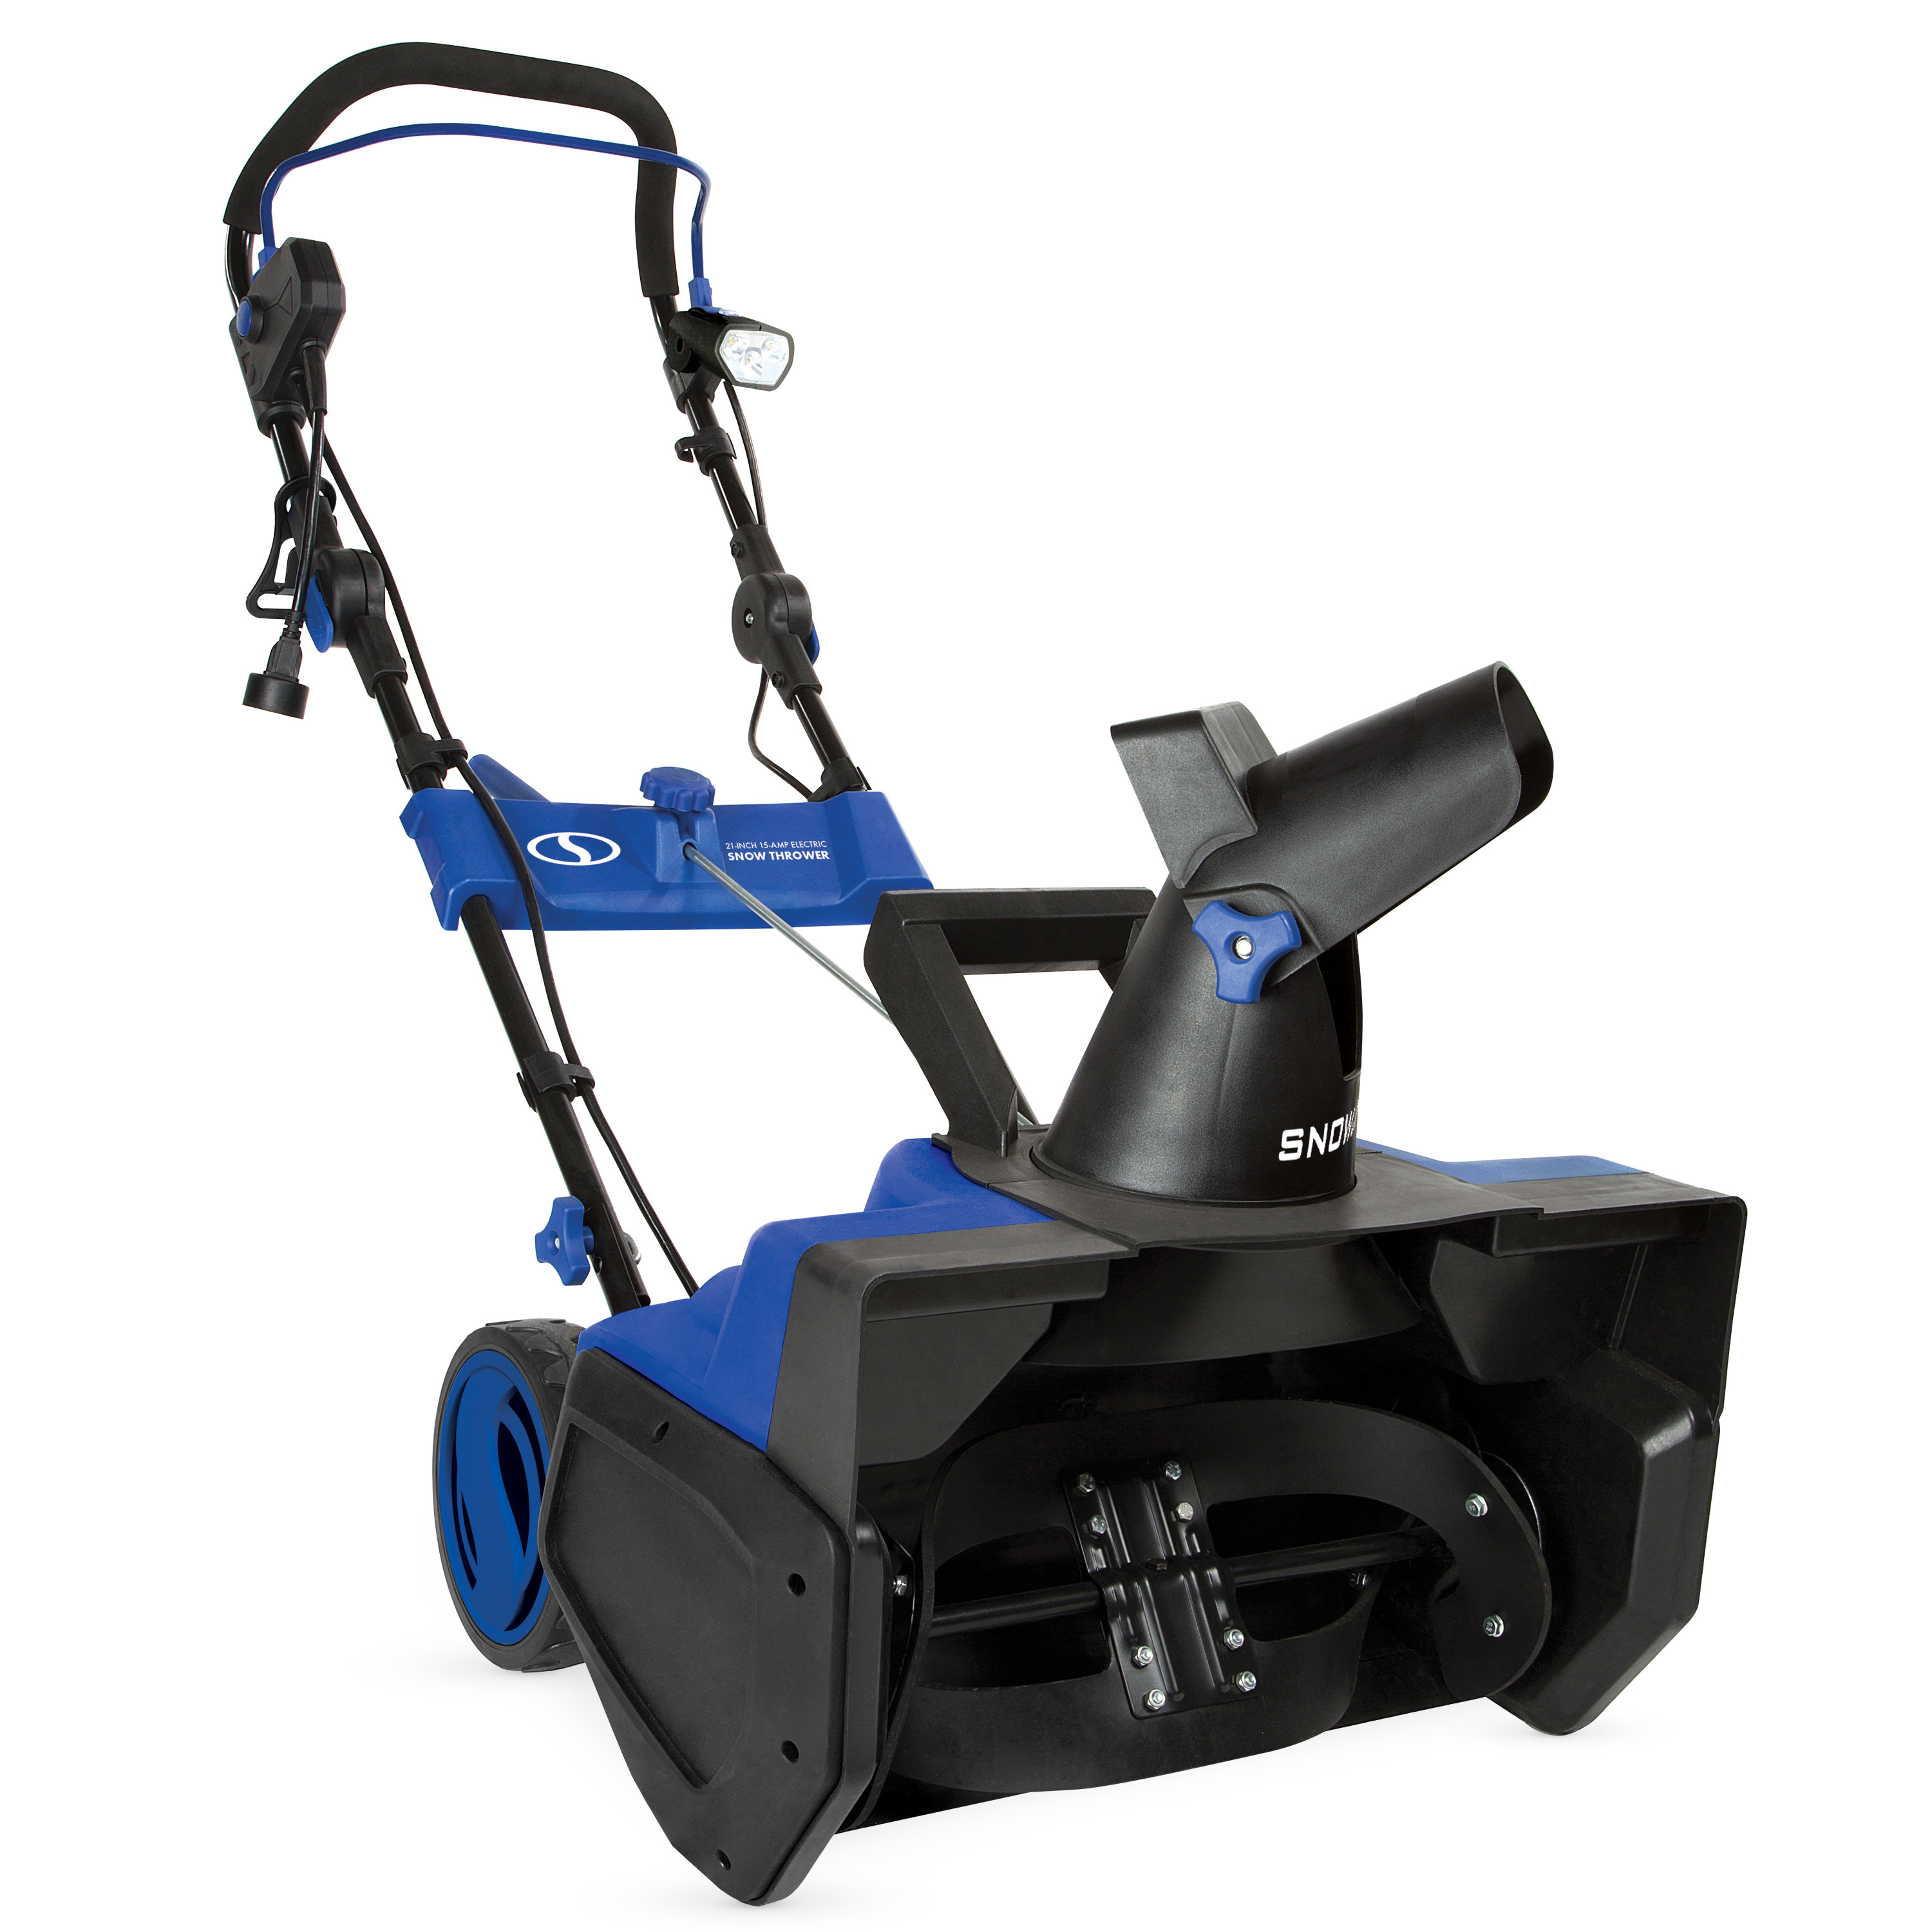 The blue and black snow thrower